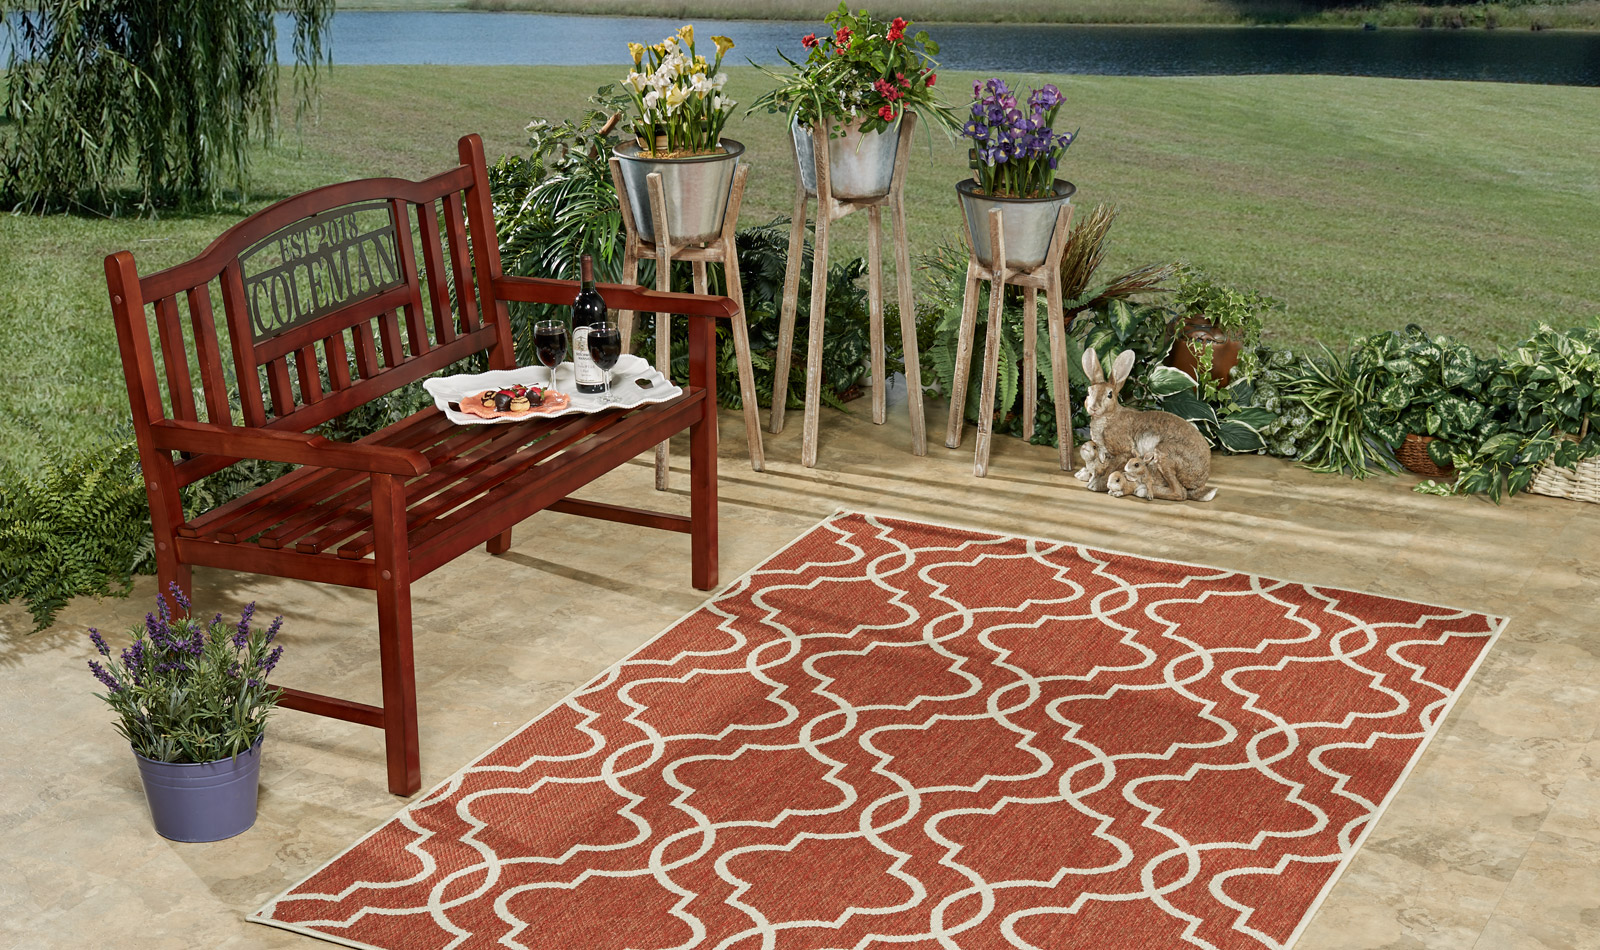 Get the Look - Delphi Backyard Patio